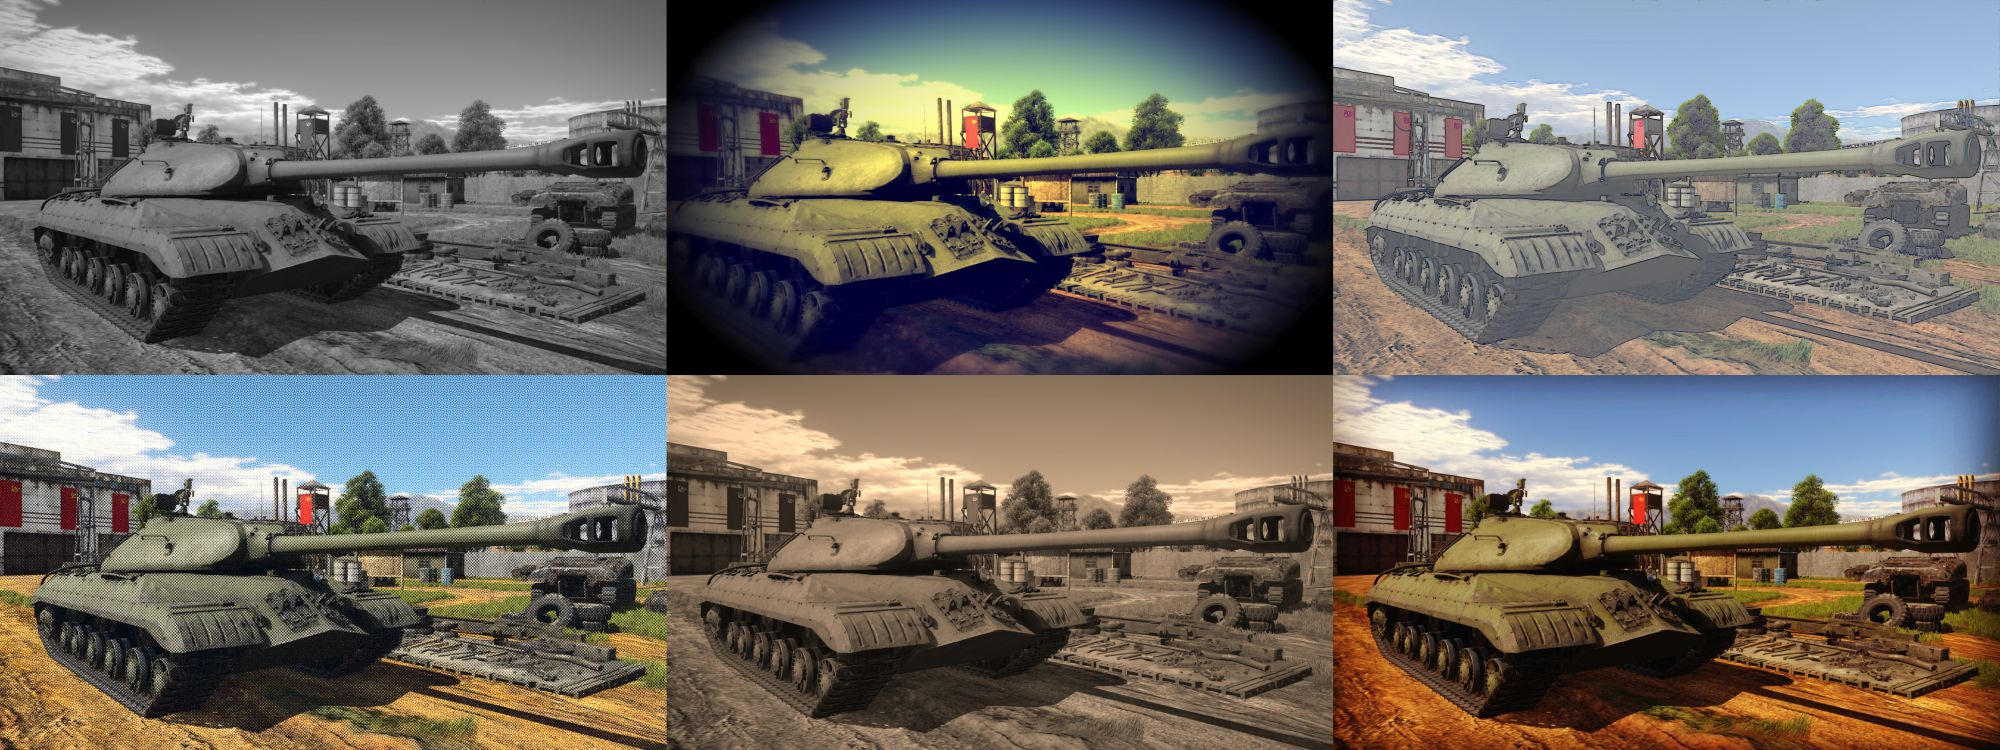 Ростелеком личный кабинет и world of tanks